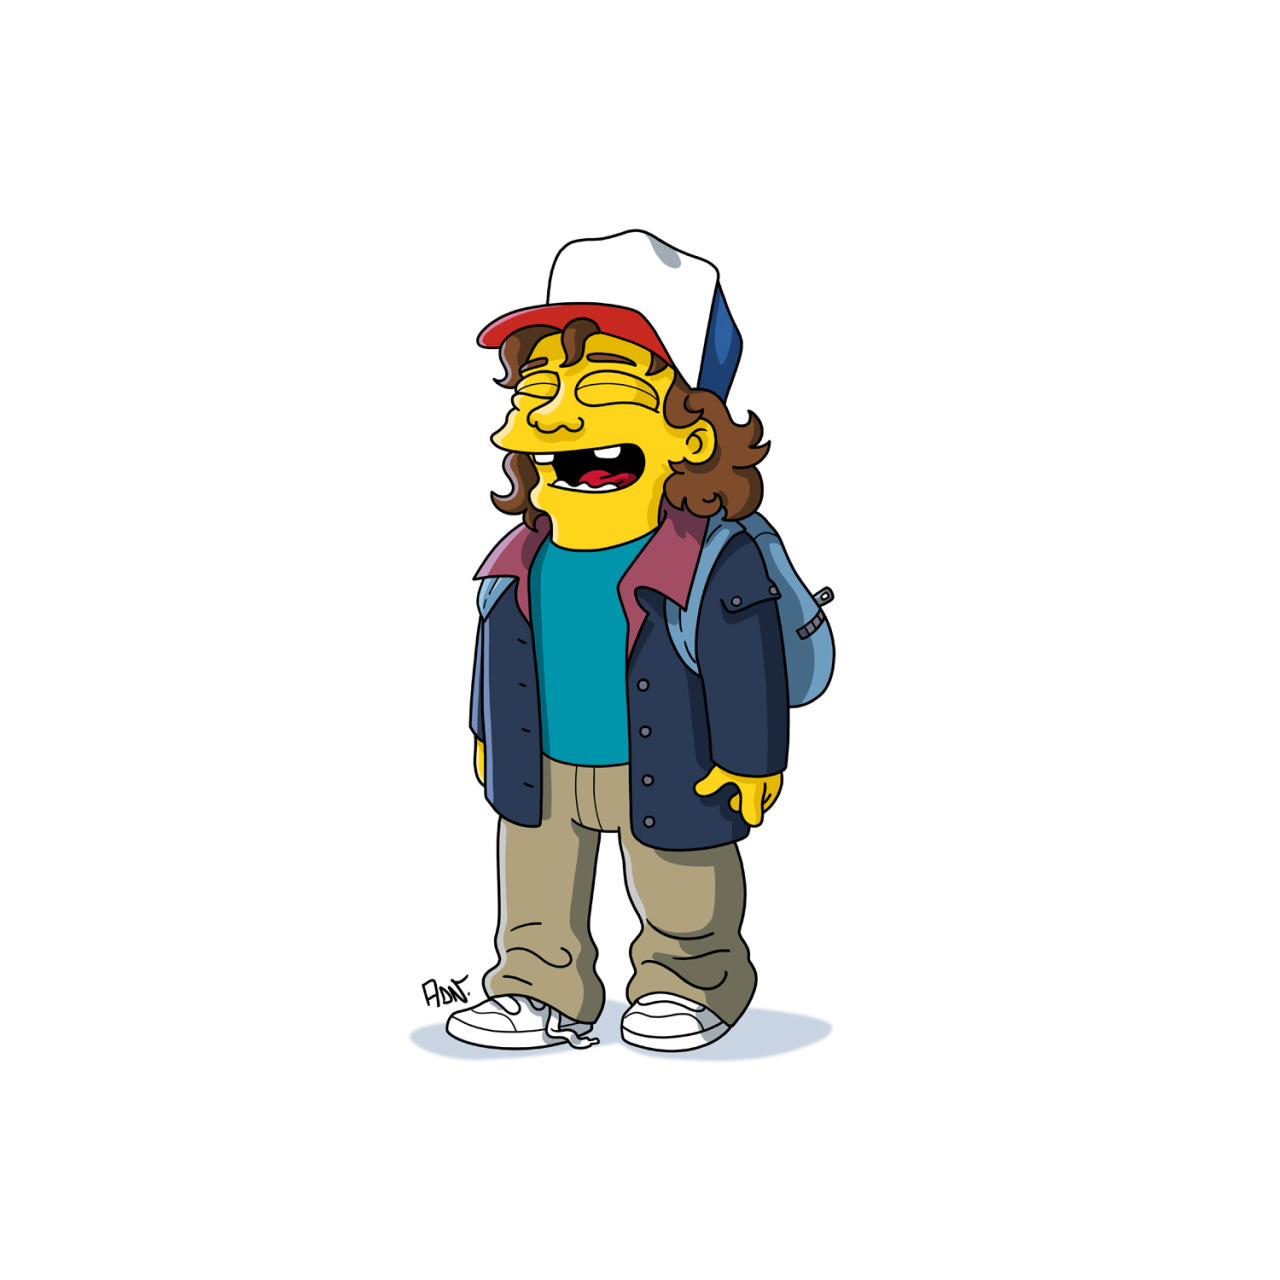 1280x1280 The Stranger Things Cast And Other Famous Characters, Simpsonized